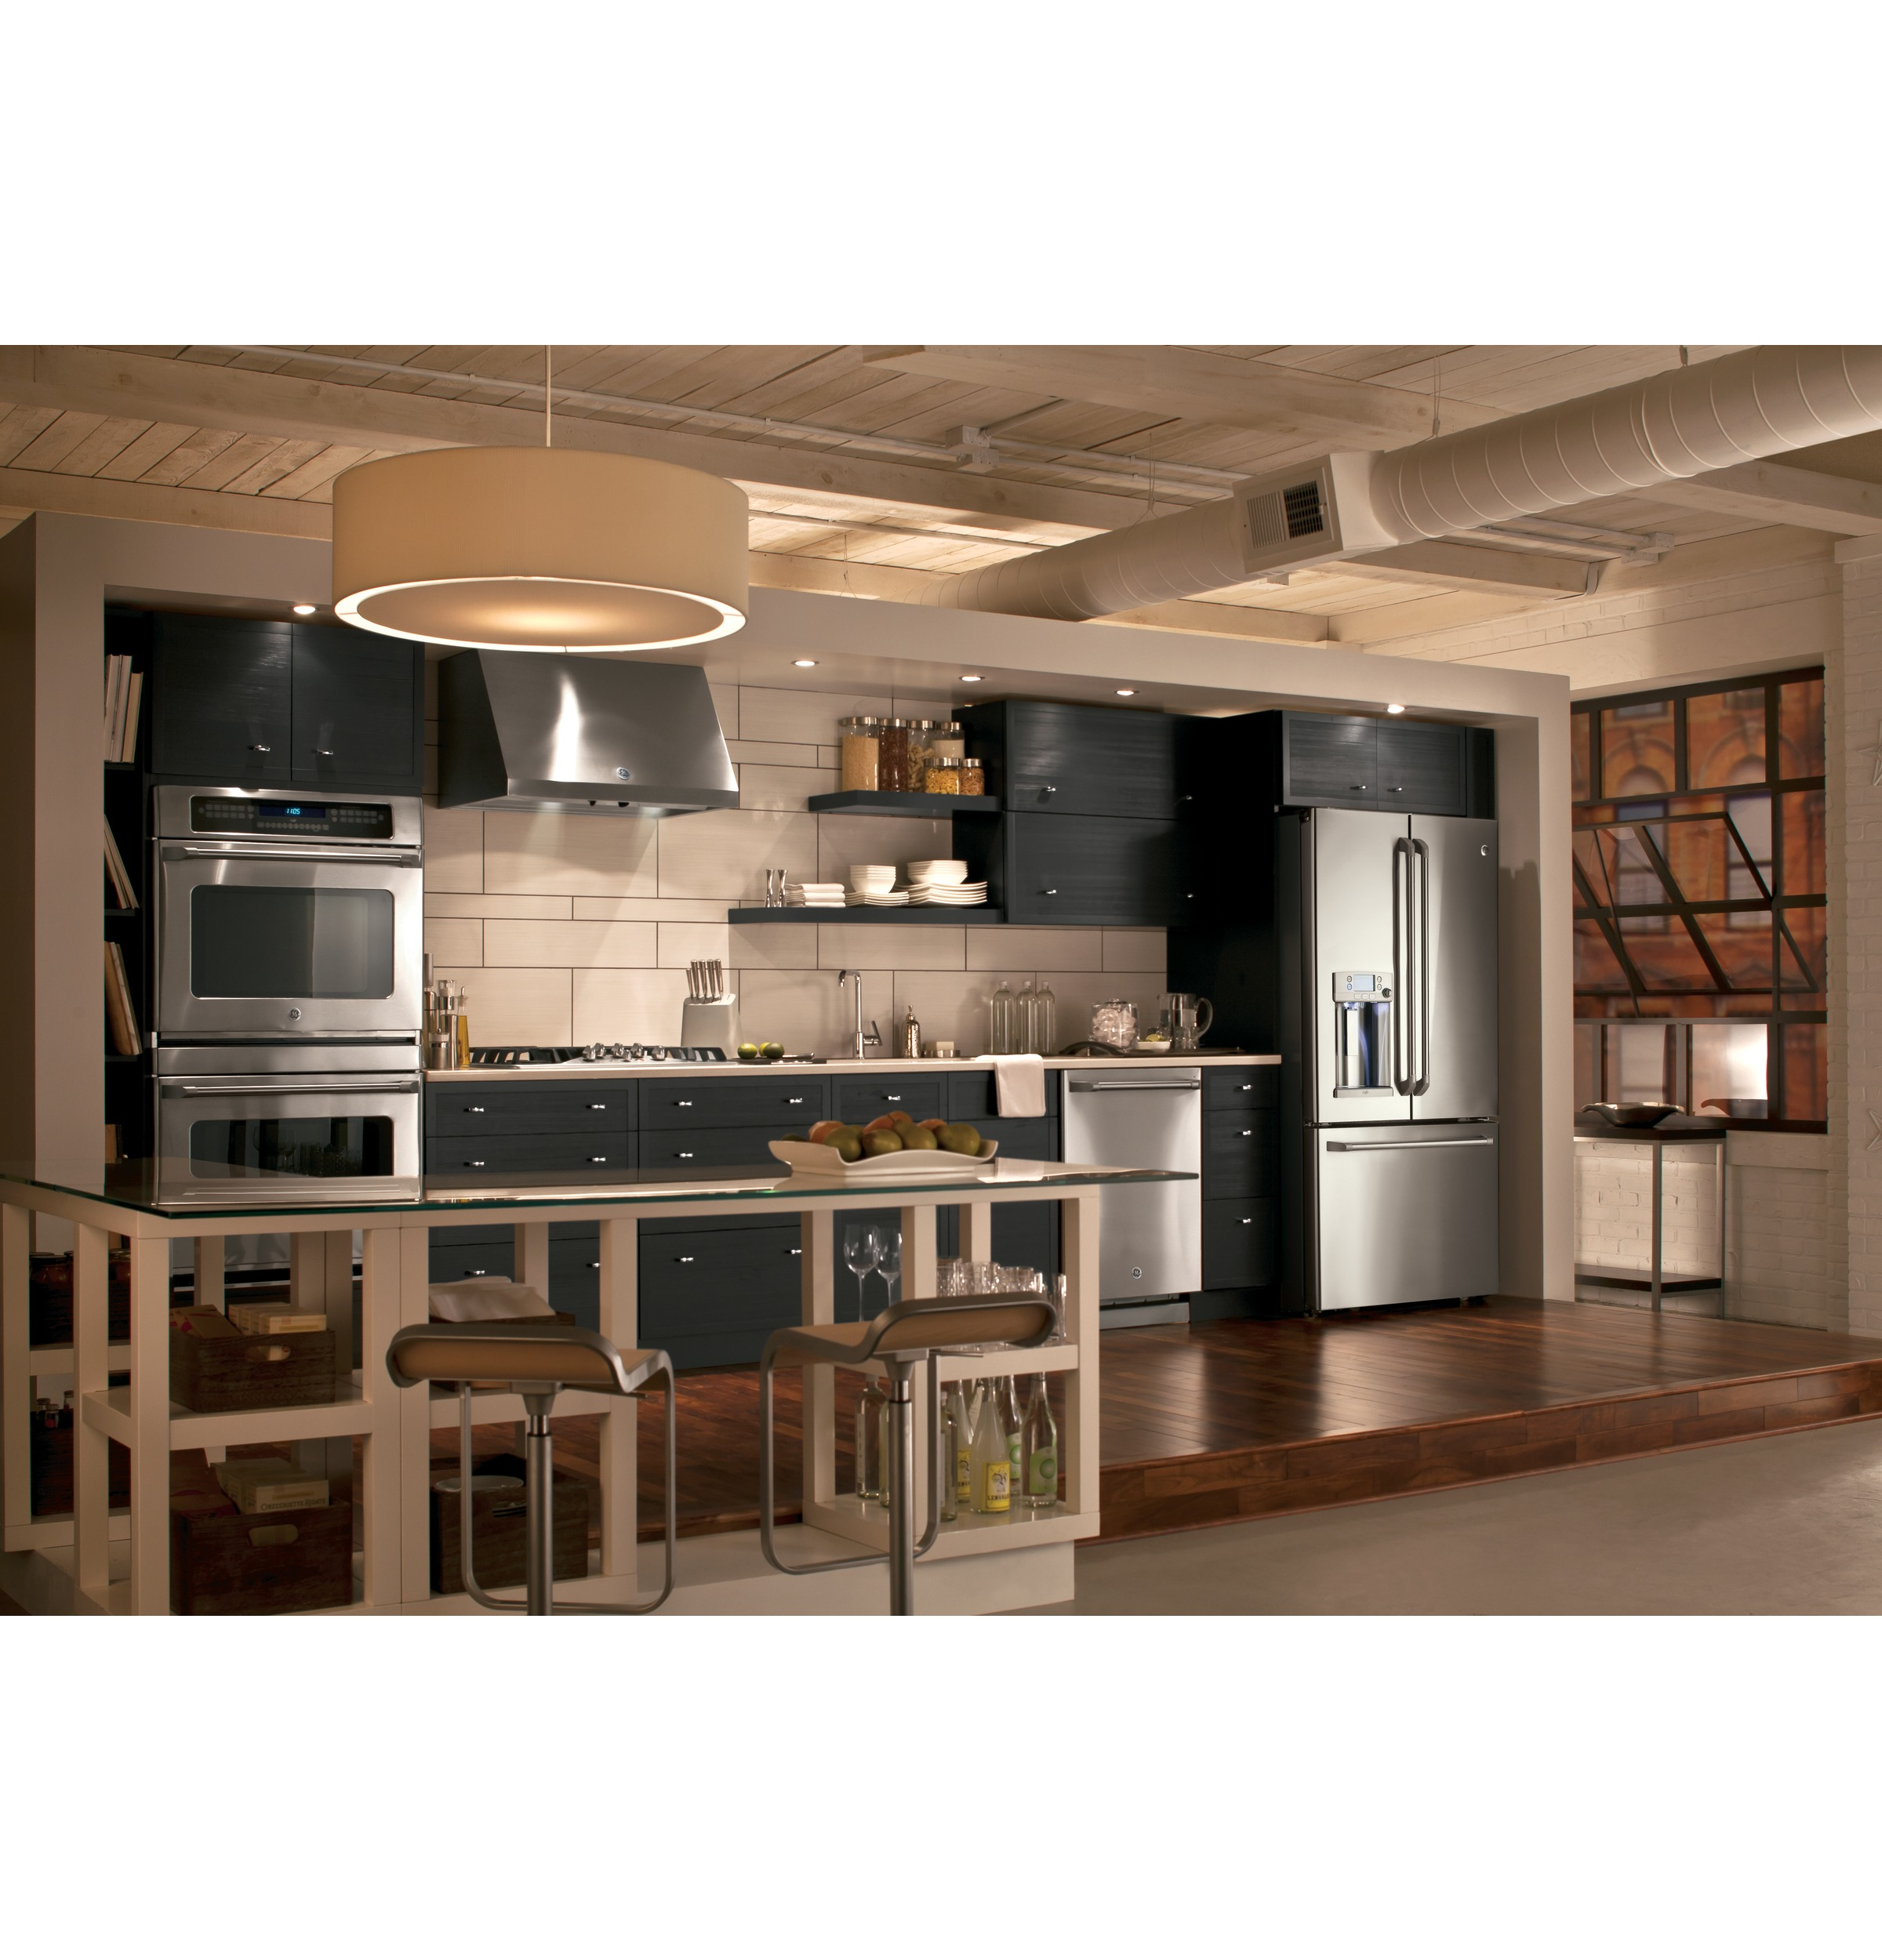 Stainless steel appliance design for a modern kitchen | GE Appliance